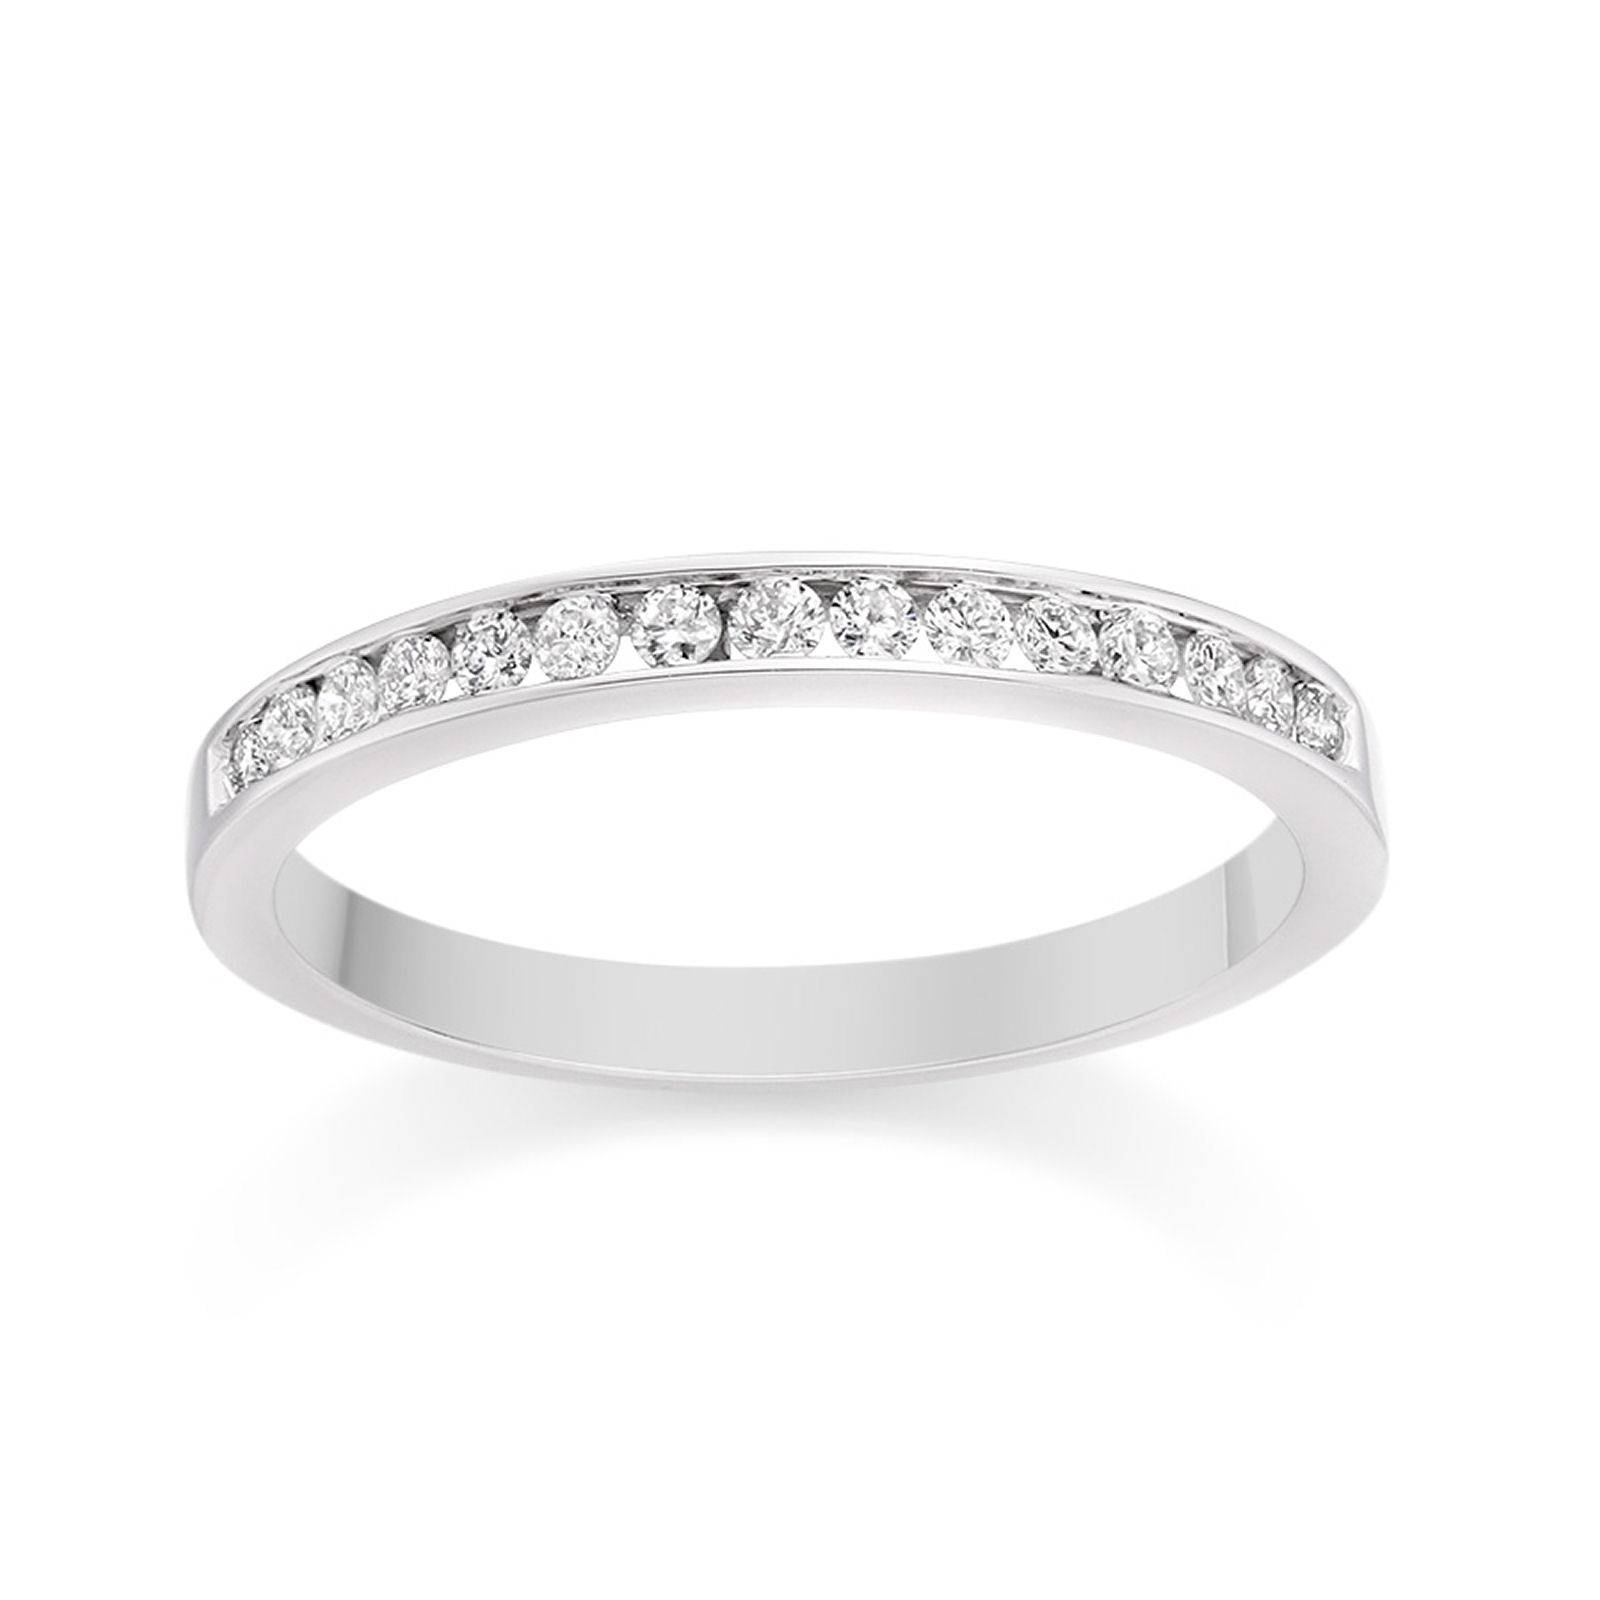 Channel Set Diamond Wedding Ring In Platinum Wedding Dress From Regarding Current Pave Set Diamond Wedding Bands (View 5 of 15)